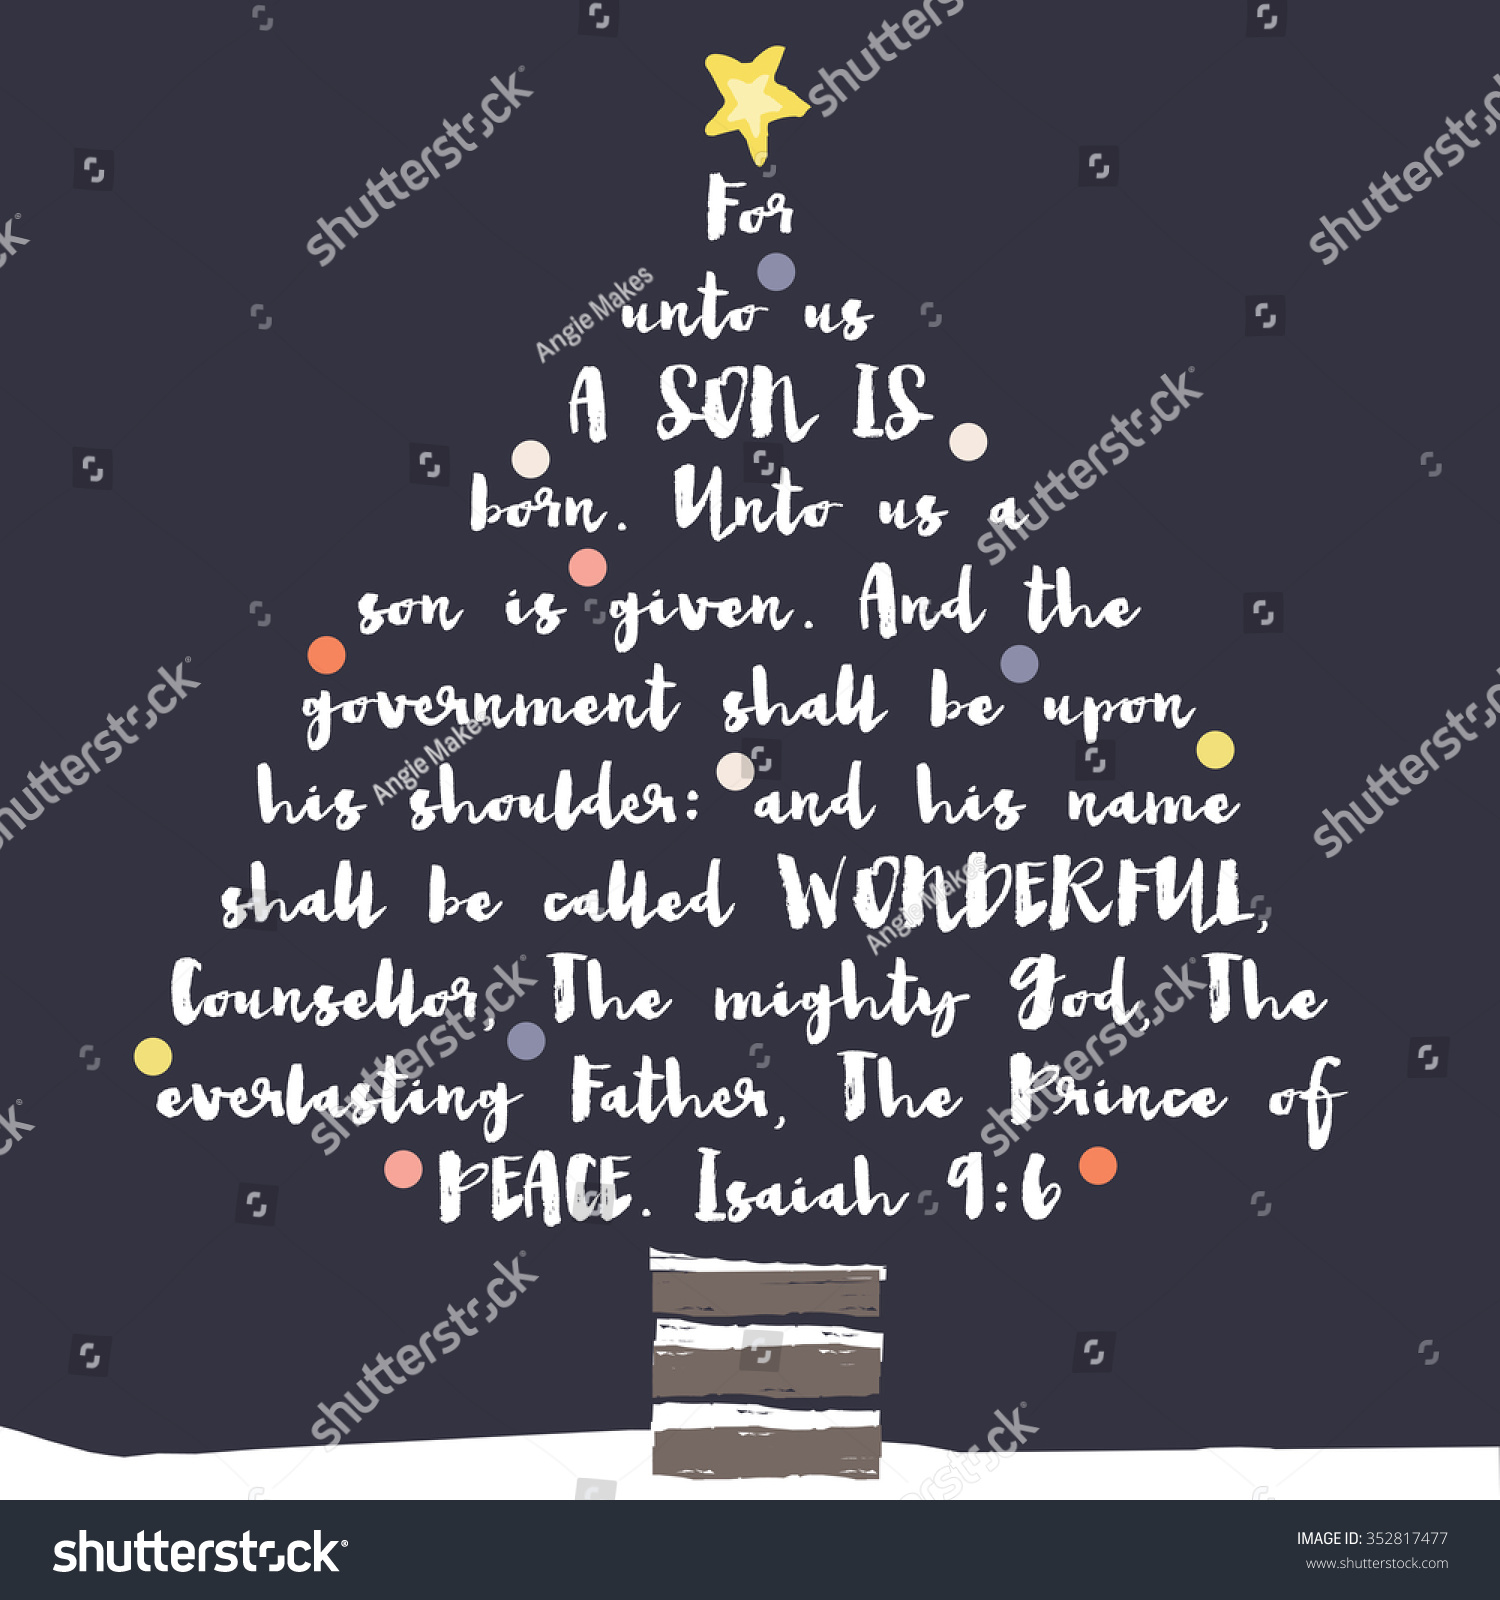 Christmas tree typography bible verse christian stock illustration christmas tree typography bible verse christian bible verse christmas card m4hsunfo